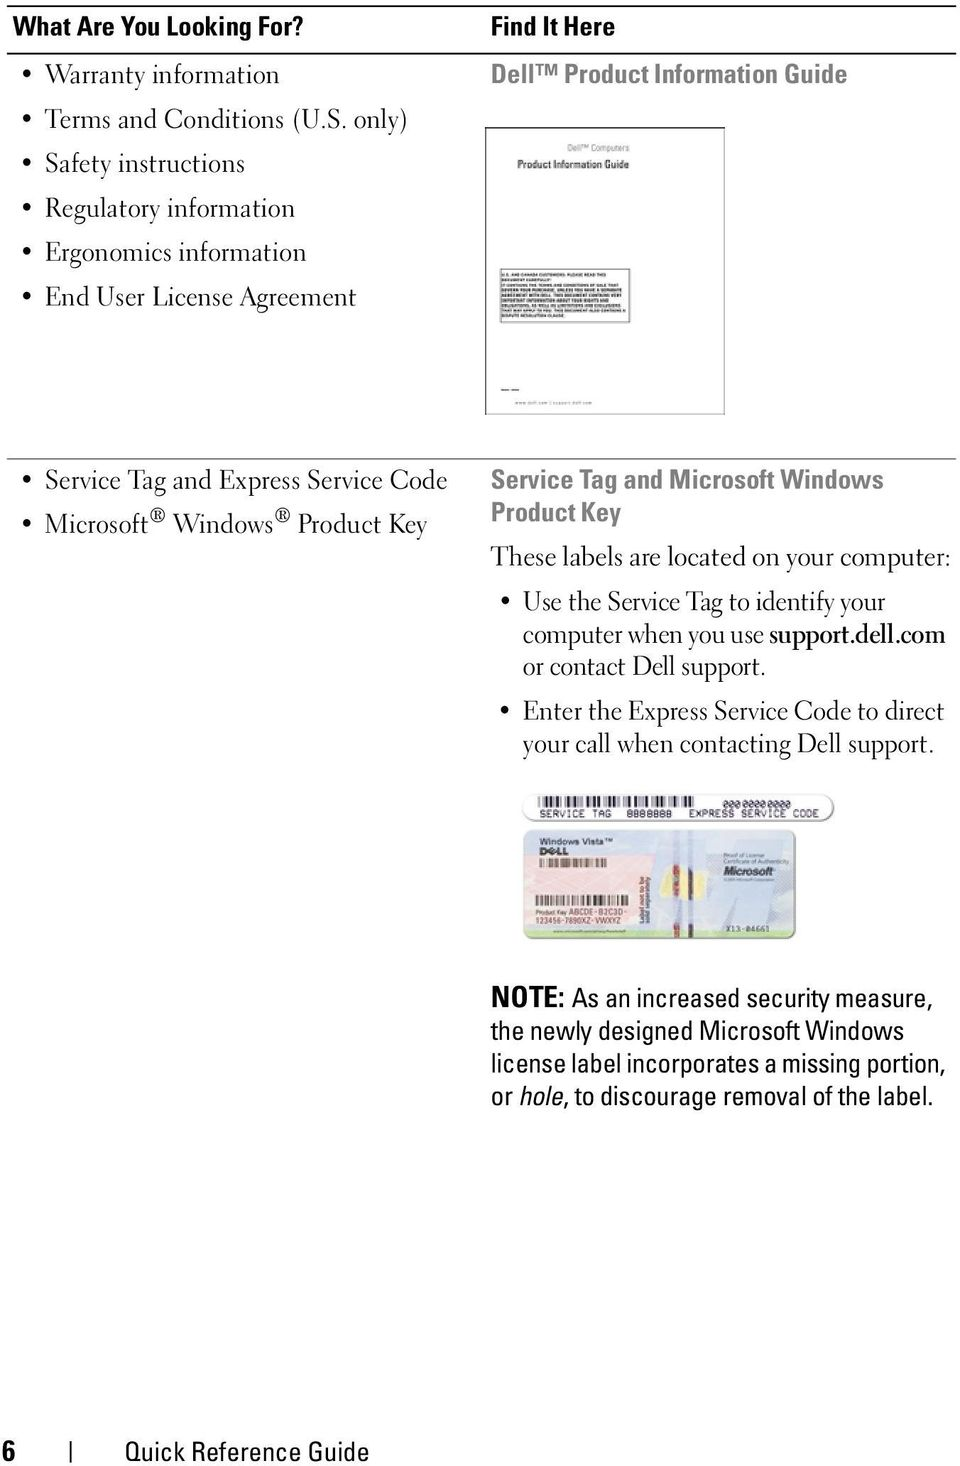 Microsoft Windows Product Key Service Tag and Microsoft Windows Product Key These labels are located on your computer: Use the Service Tag to identify your computer when you use support.